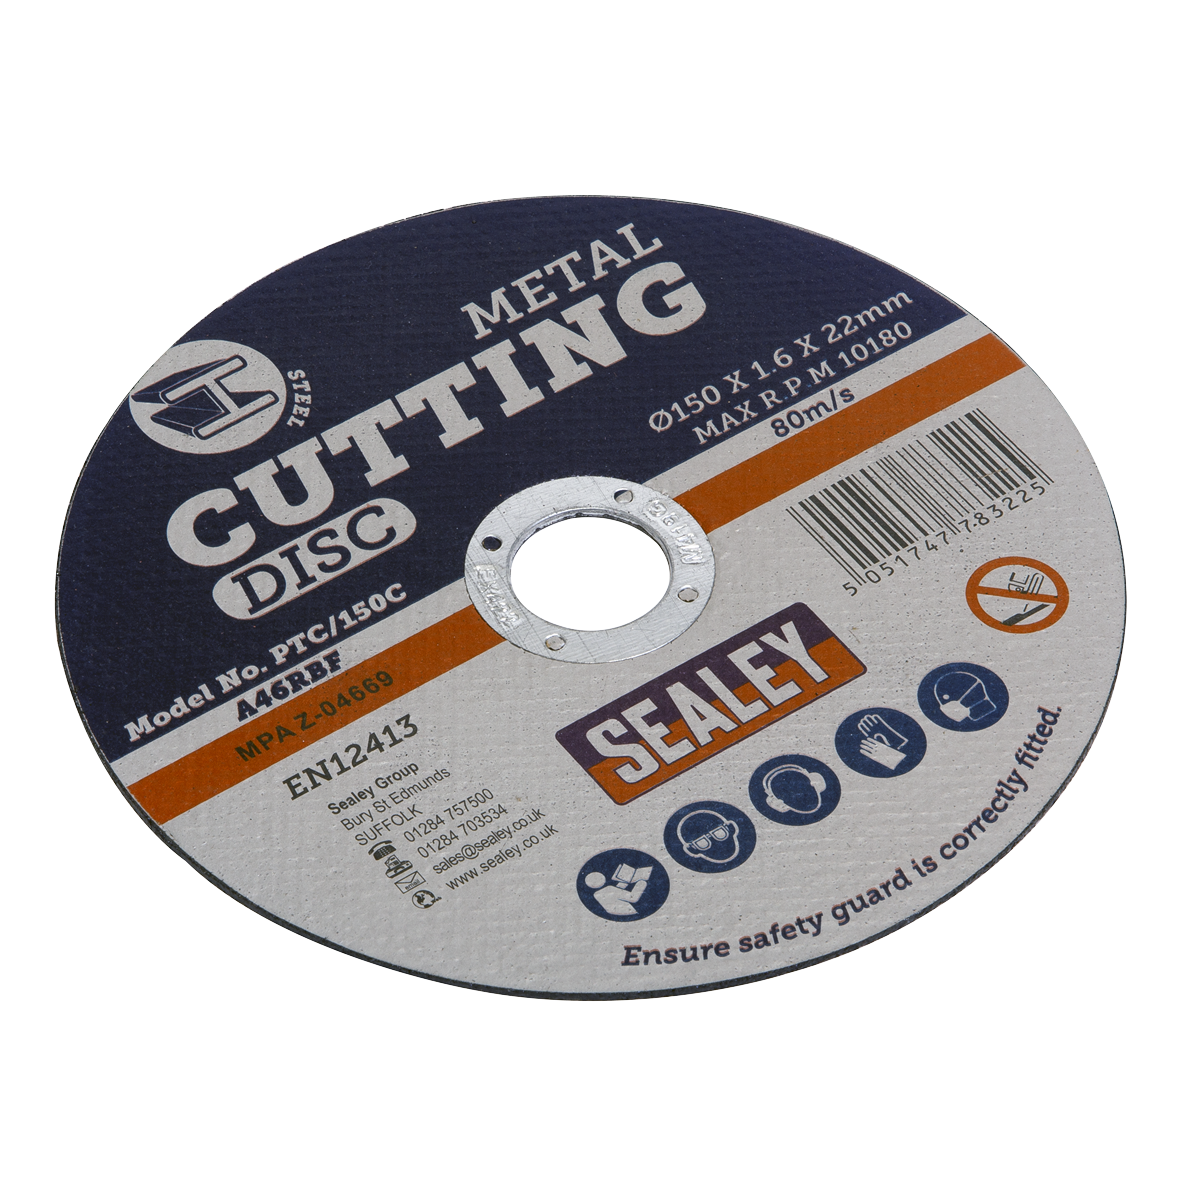 Sealey Cutting Disc Ø355 x 3mm Ø25.4mm Bore PTC/355C   General purpose flat stone cutting disc recommended for use with Sealey and other leading makes of grinding and cutting power tools.   toolforce.ie